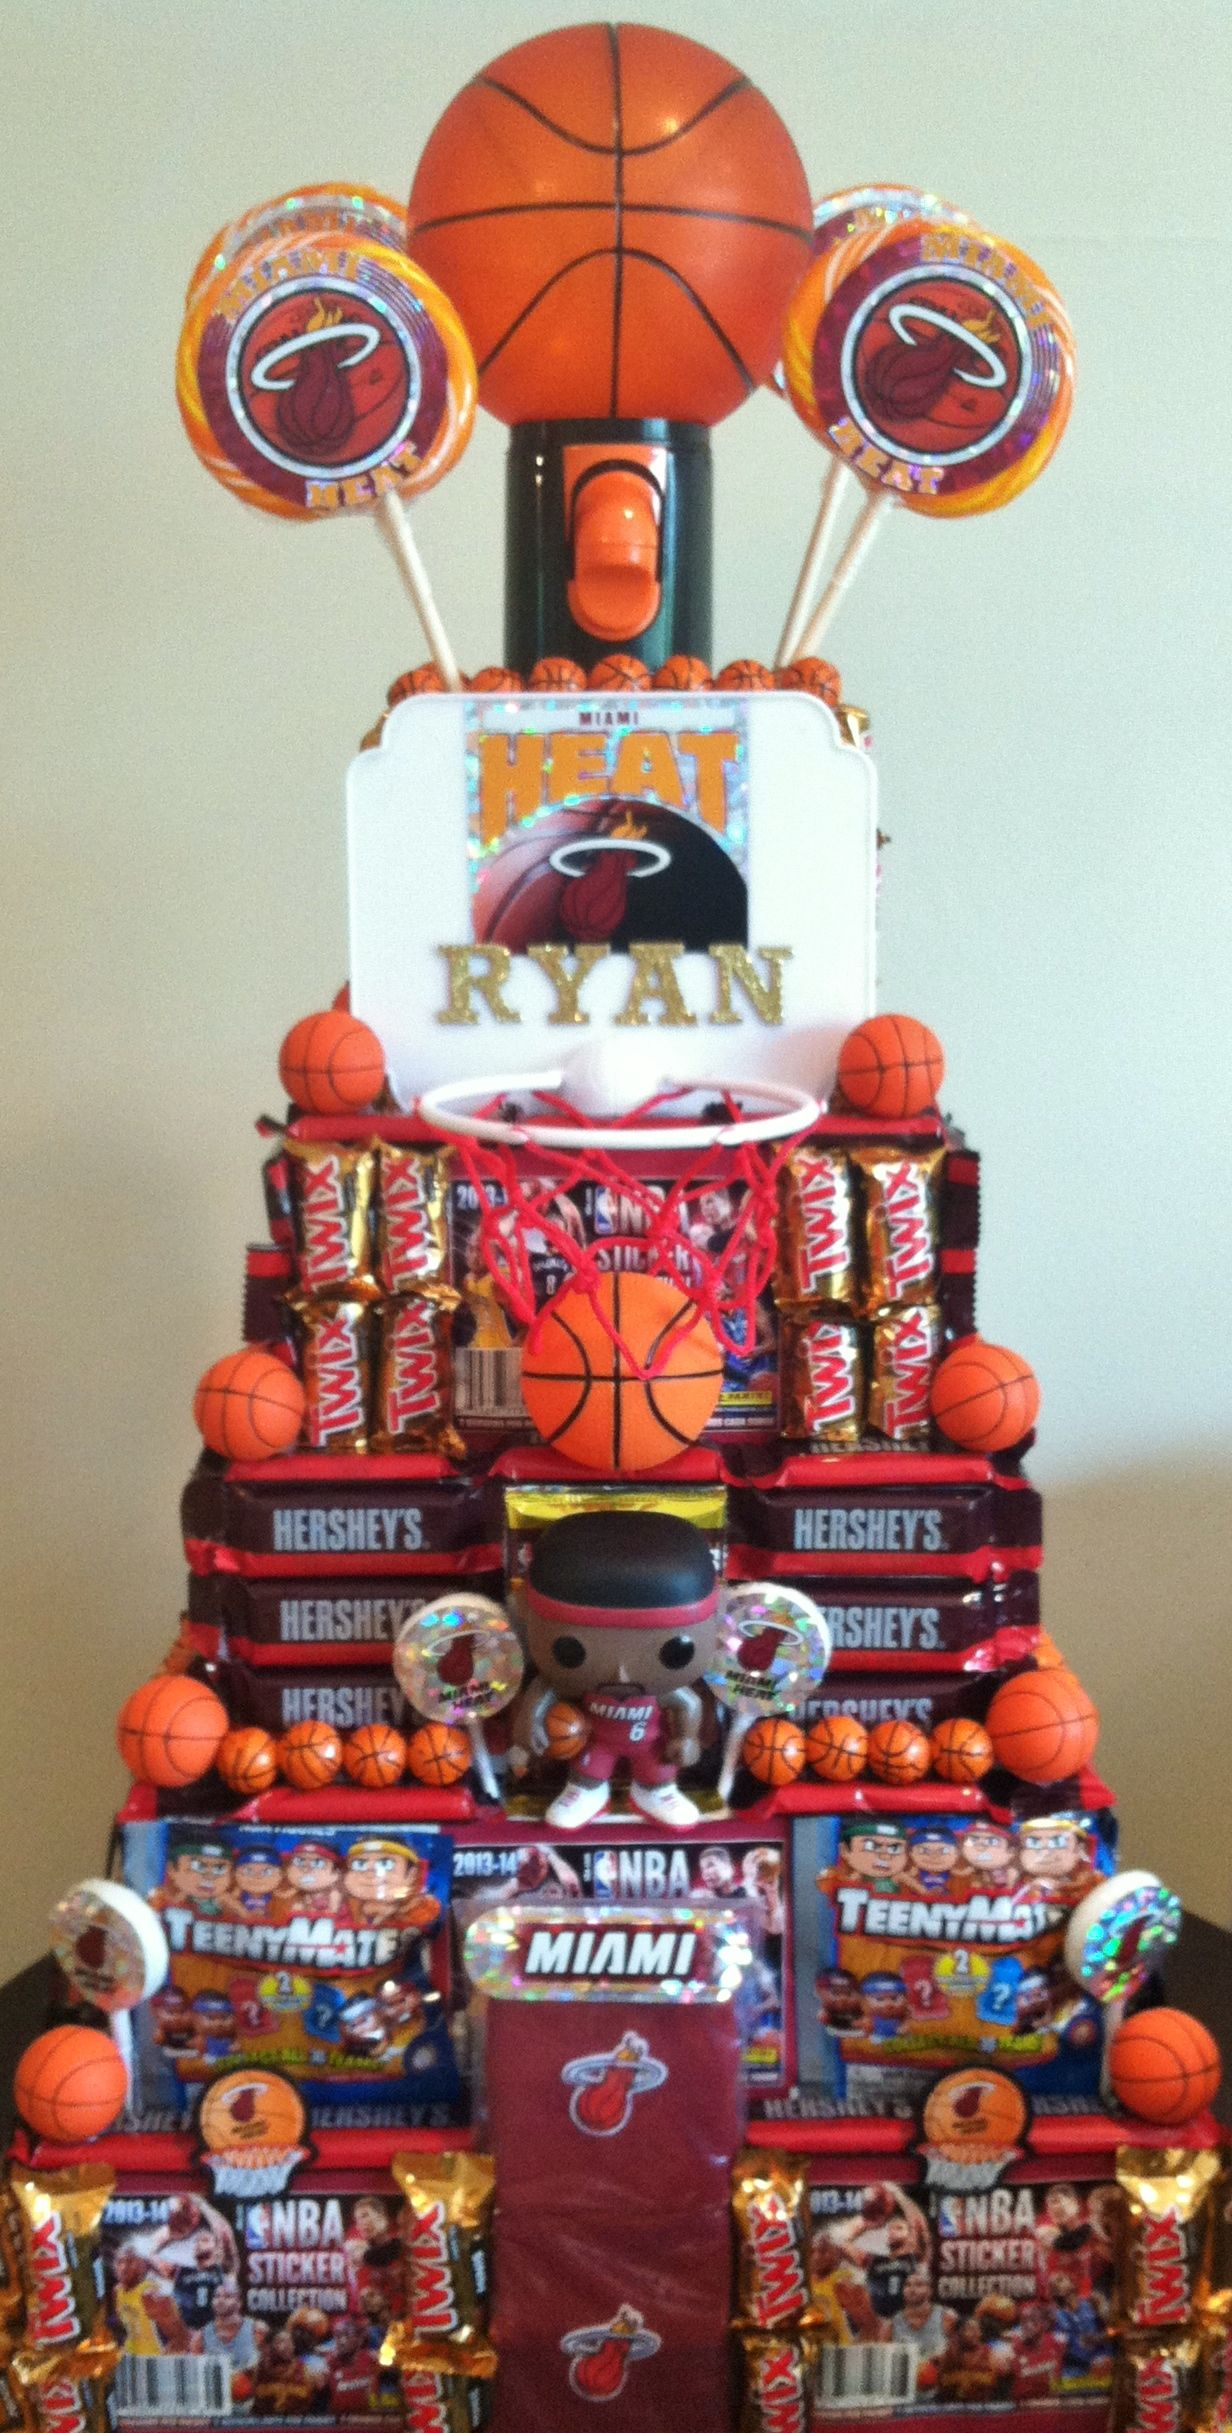 Miami Heat Basketball Party Candy Centerpieces By